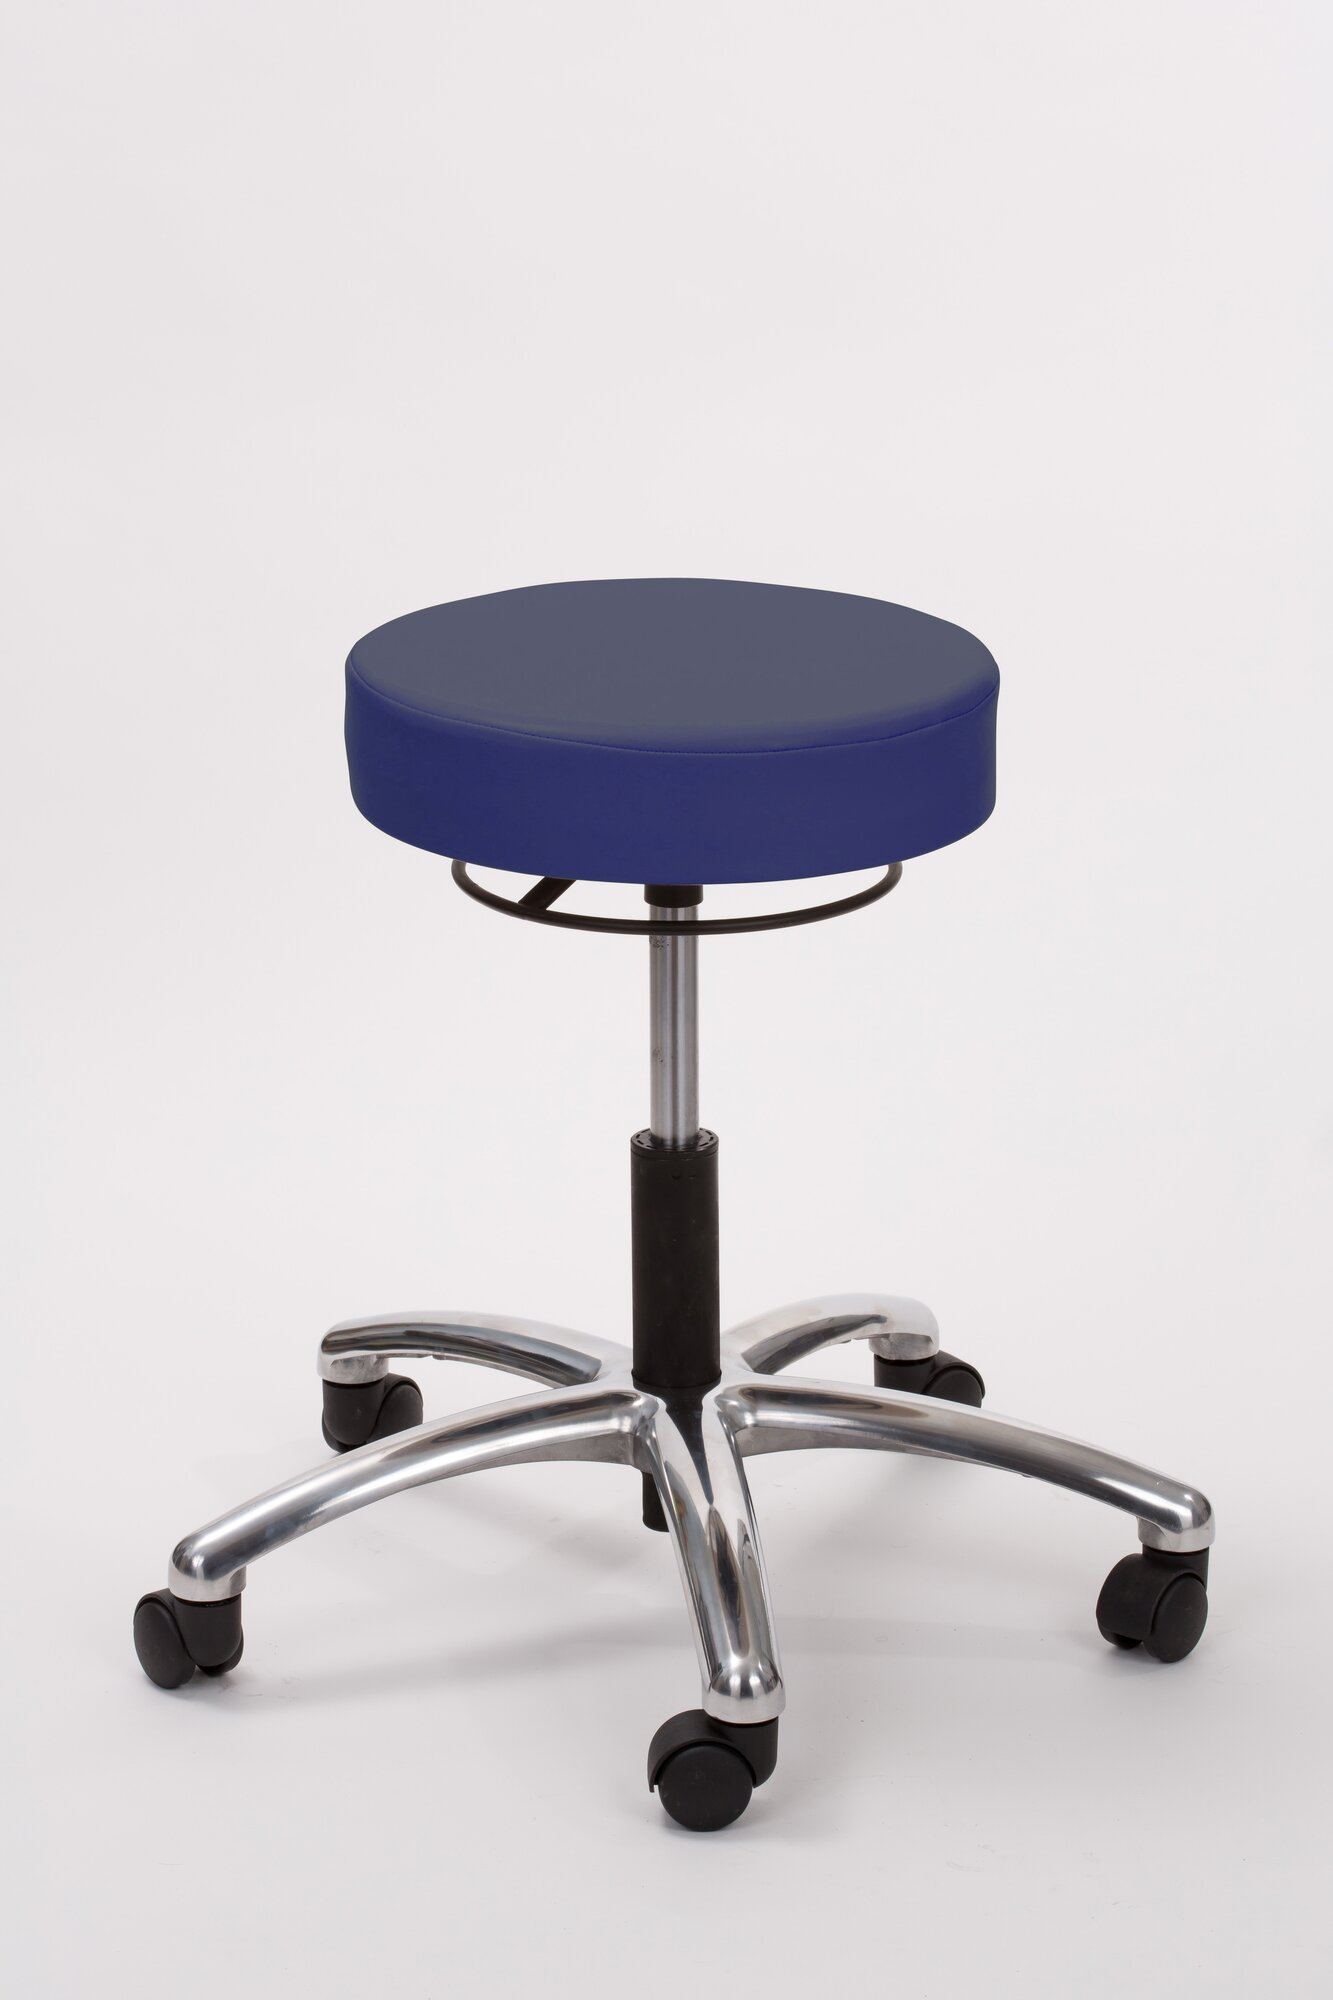 Height Adjusts Brandt Airbuoy Pneumatic Stool With Ring